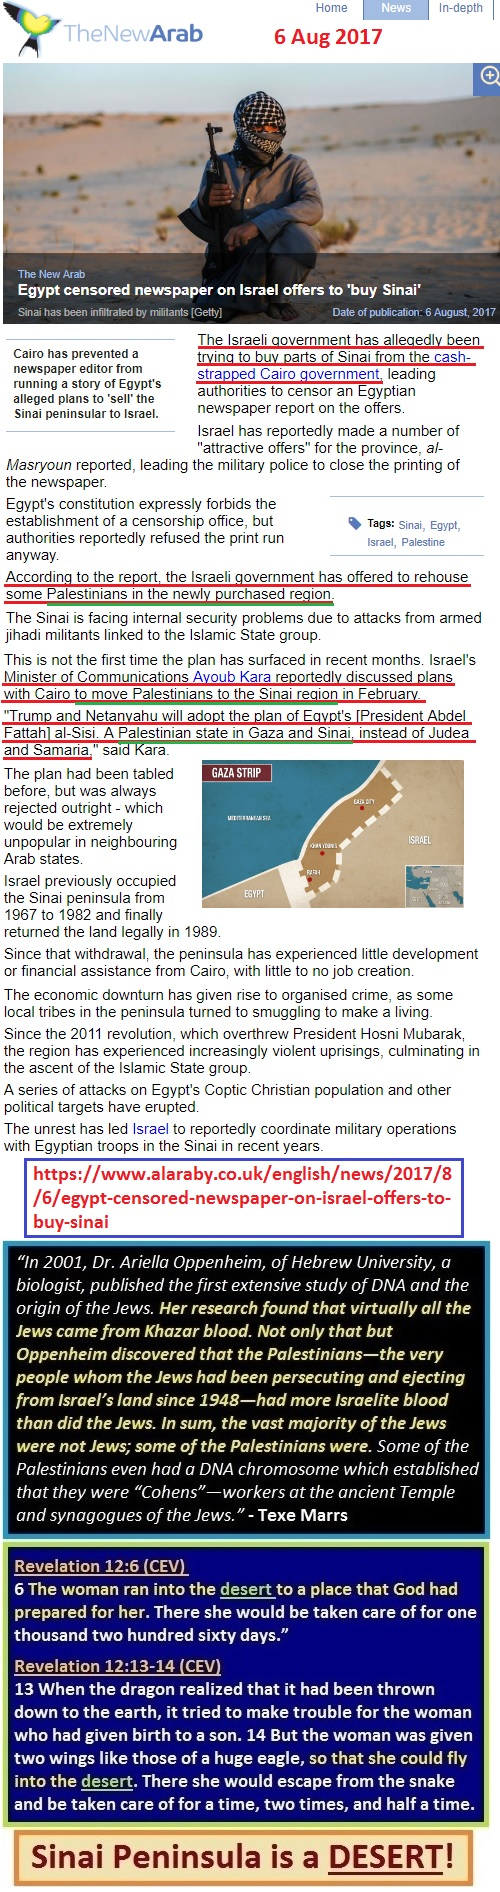 https://www.alaraby.co.uk/english/news/2017/8/6/egypt-censored-newspaper-on-israel-offers-to-buy-sinai